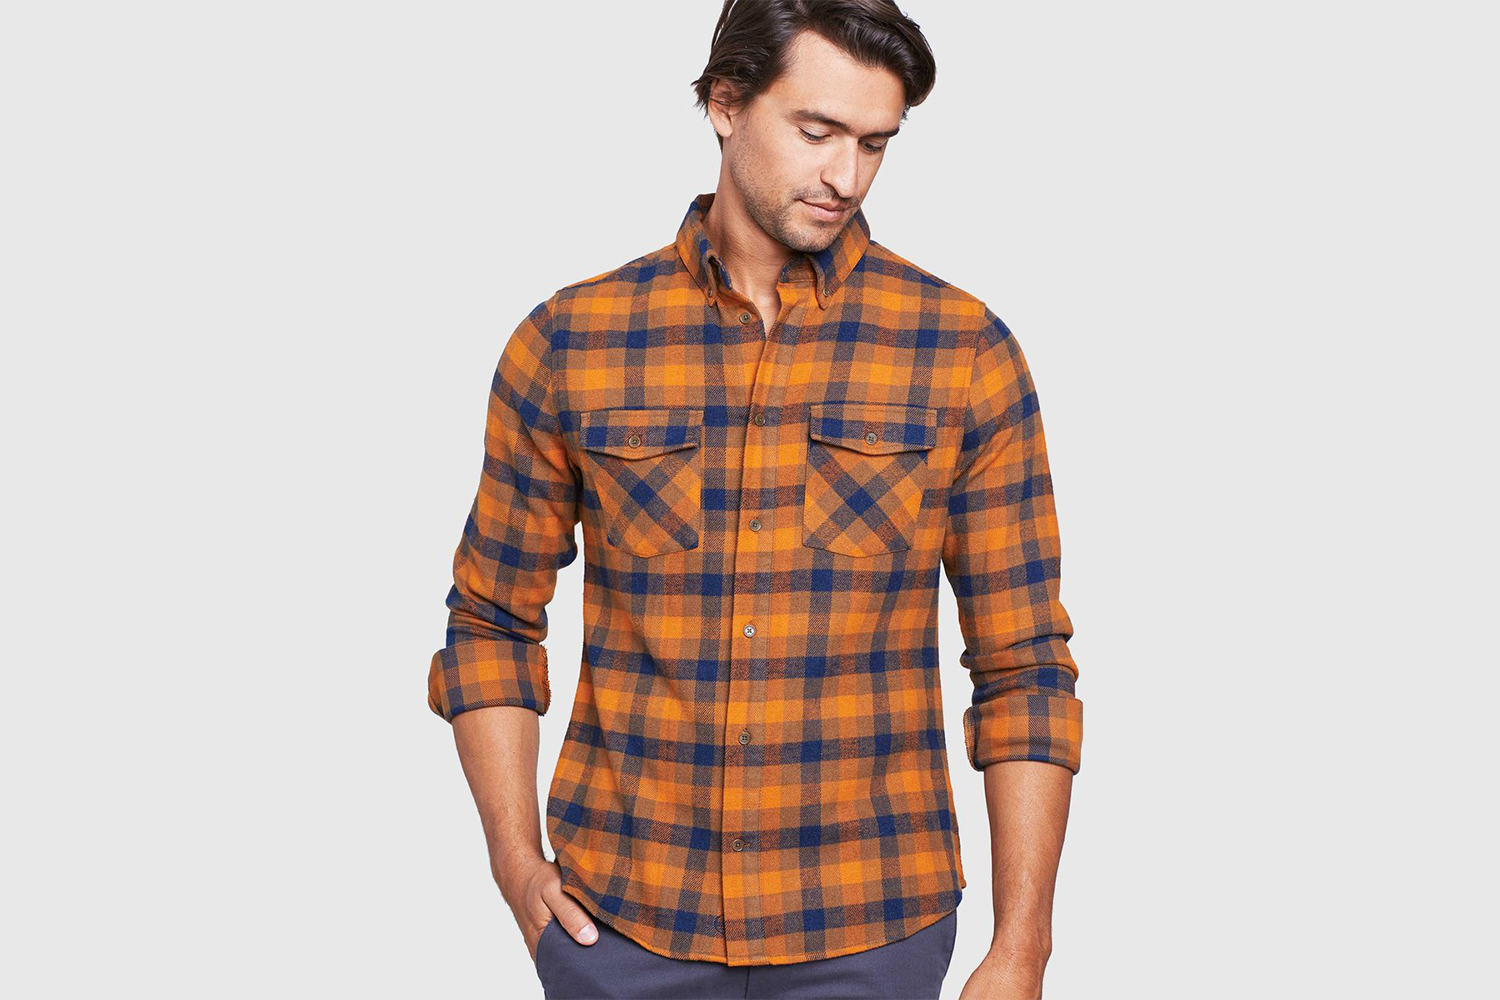 The Men's Responsible Flannel from United By Blue